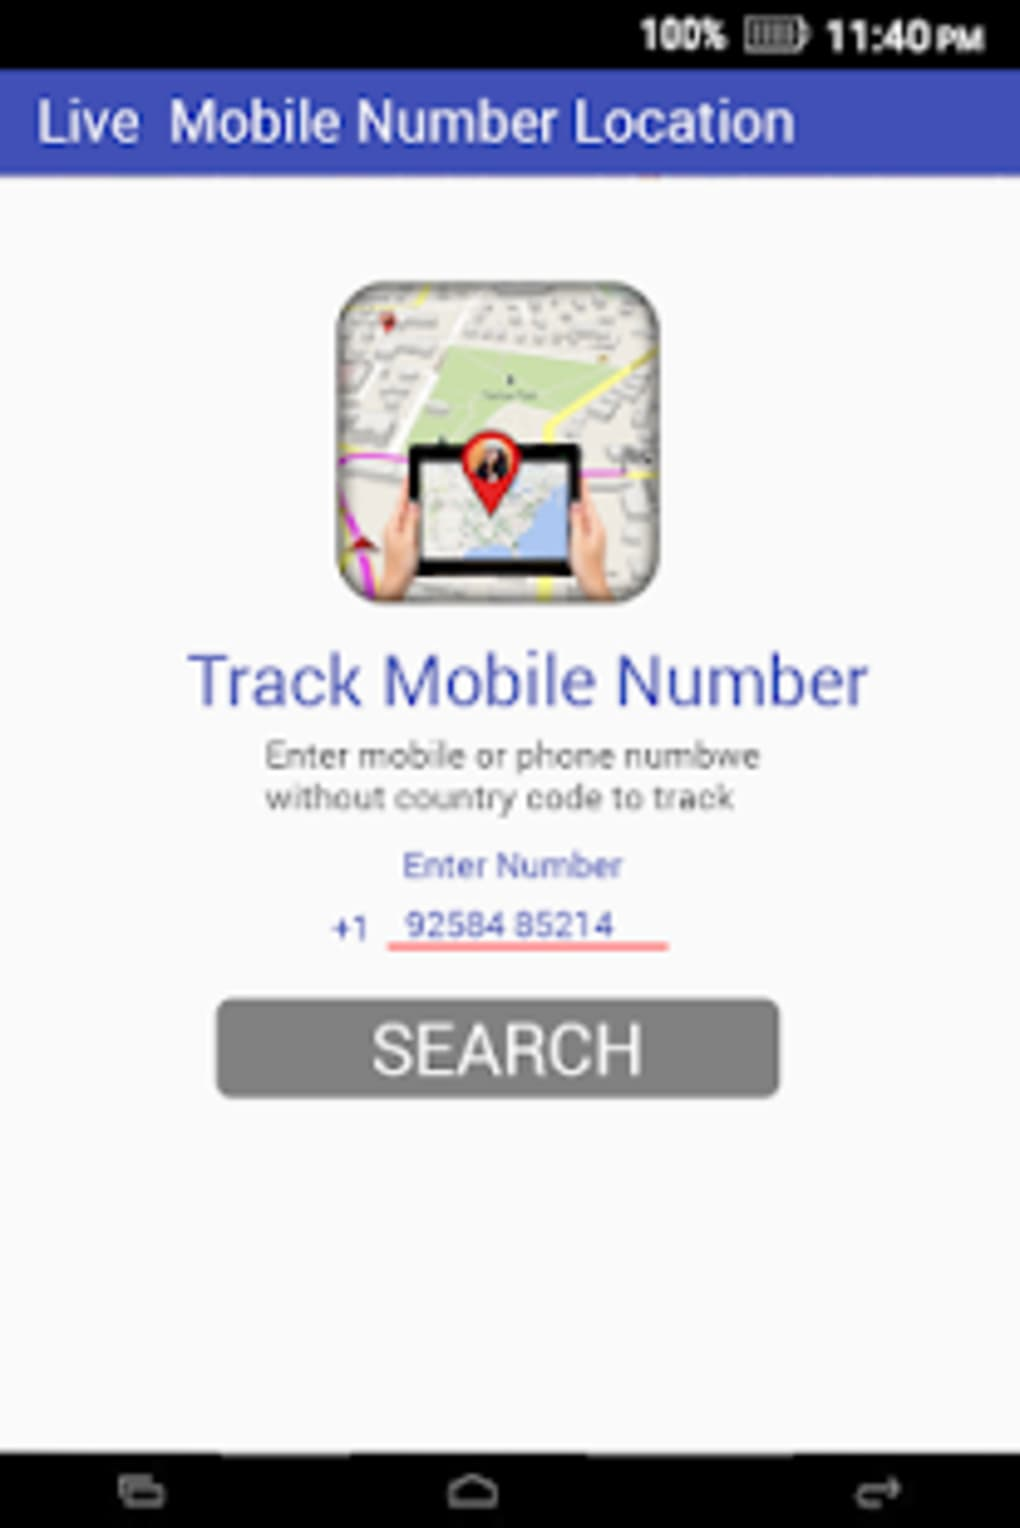 Live Mobile Number Tracker - Phone Number Tracker for Android - Download